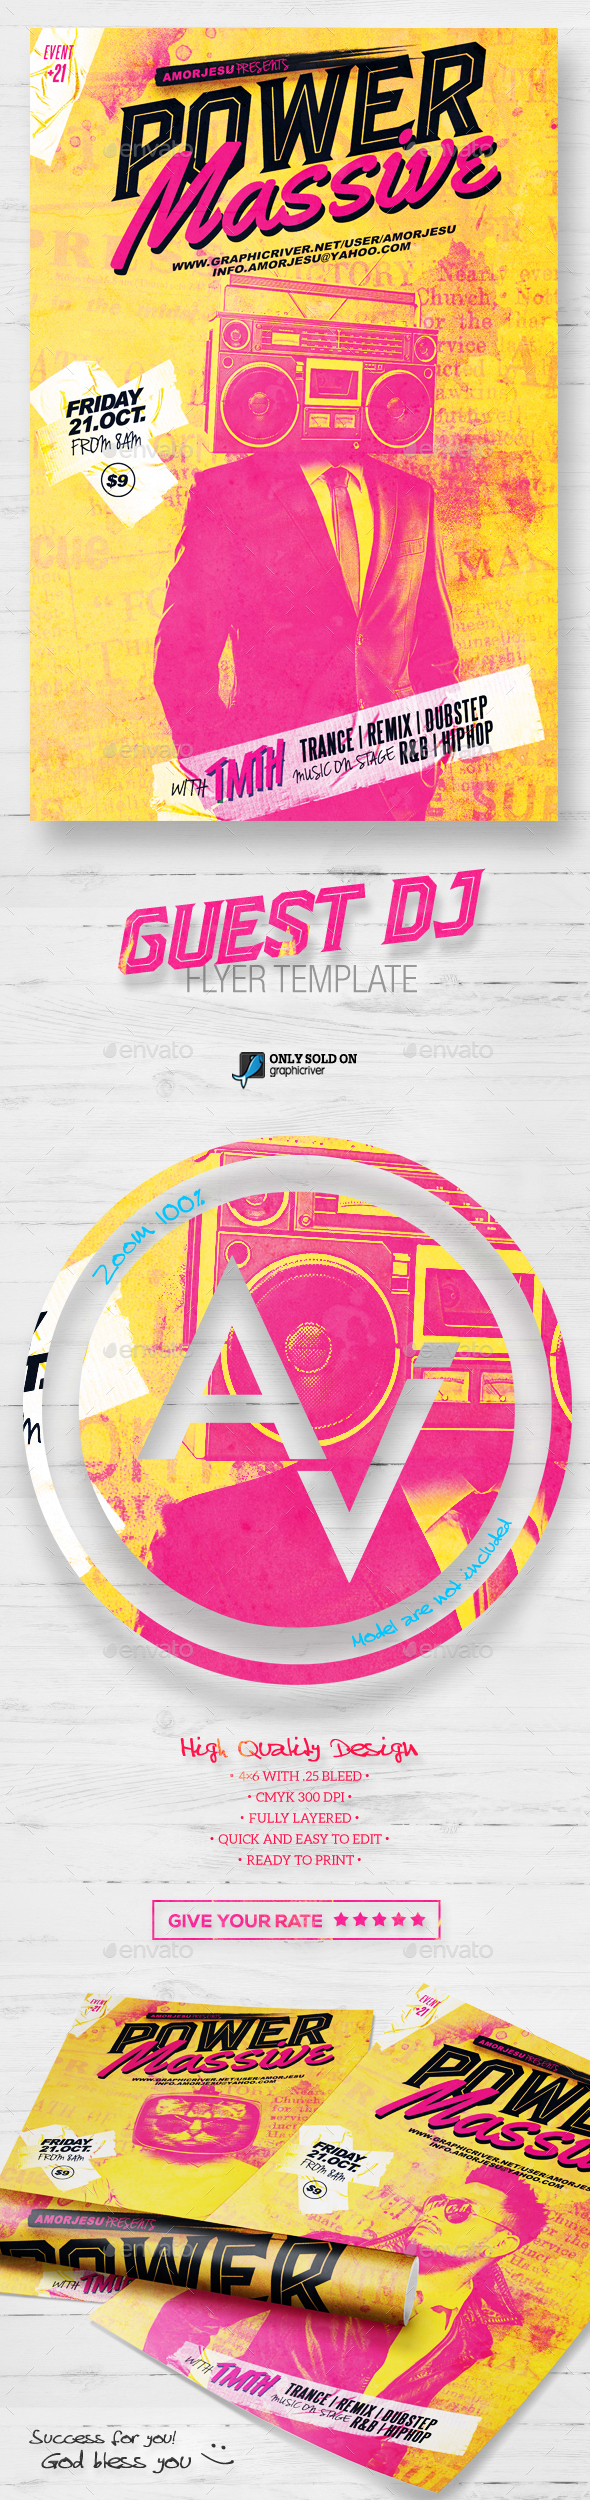 Guest DJ Flyer Template V4 - Clubs & Parties Events